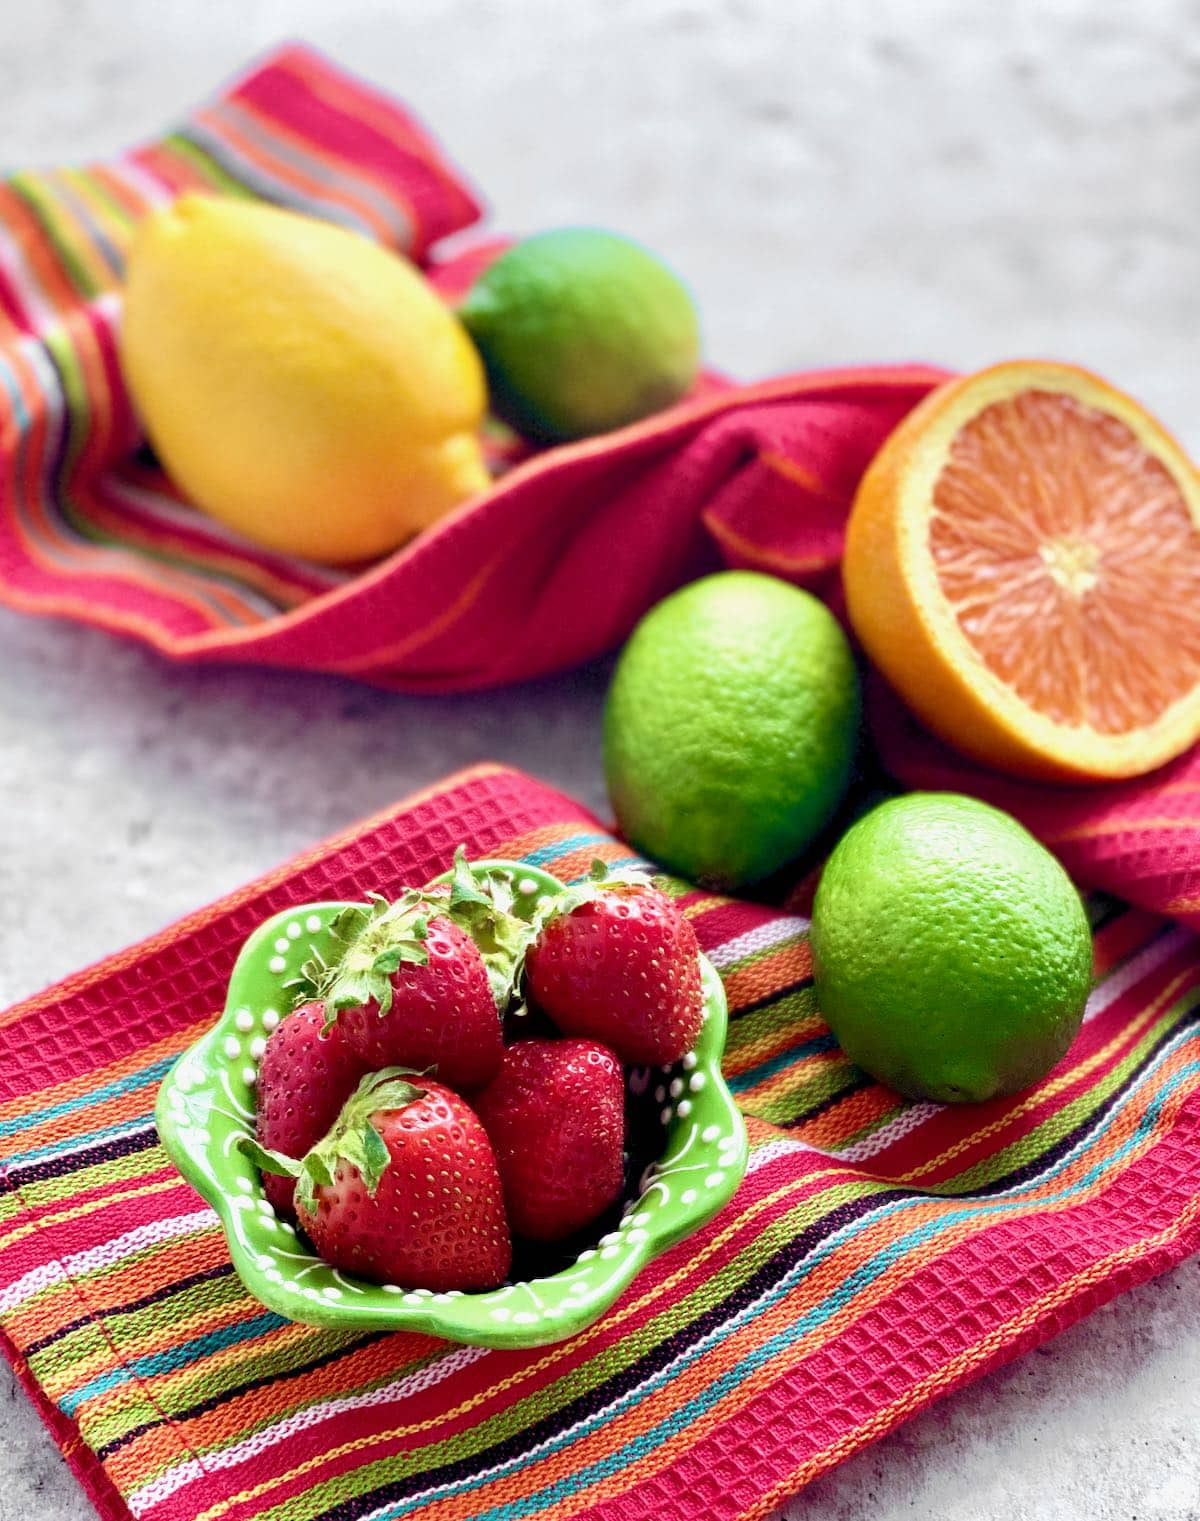 strawberries, oranges, limes and lemons on a red striped cloth.